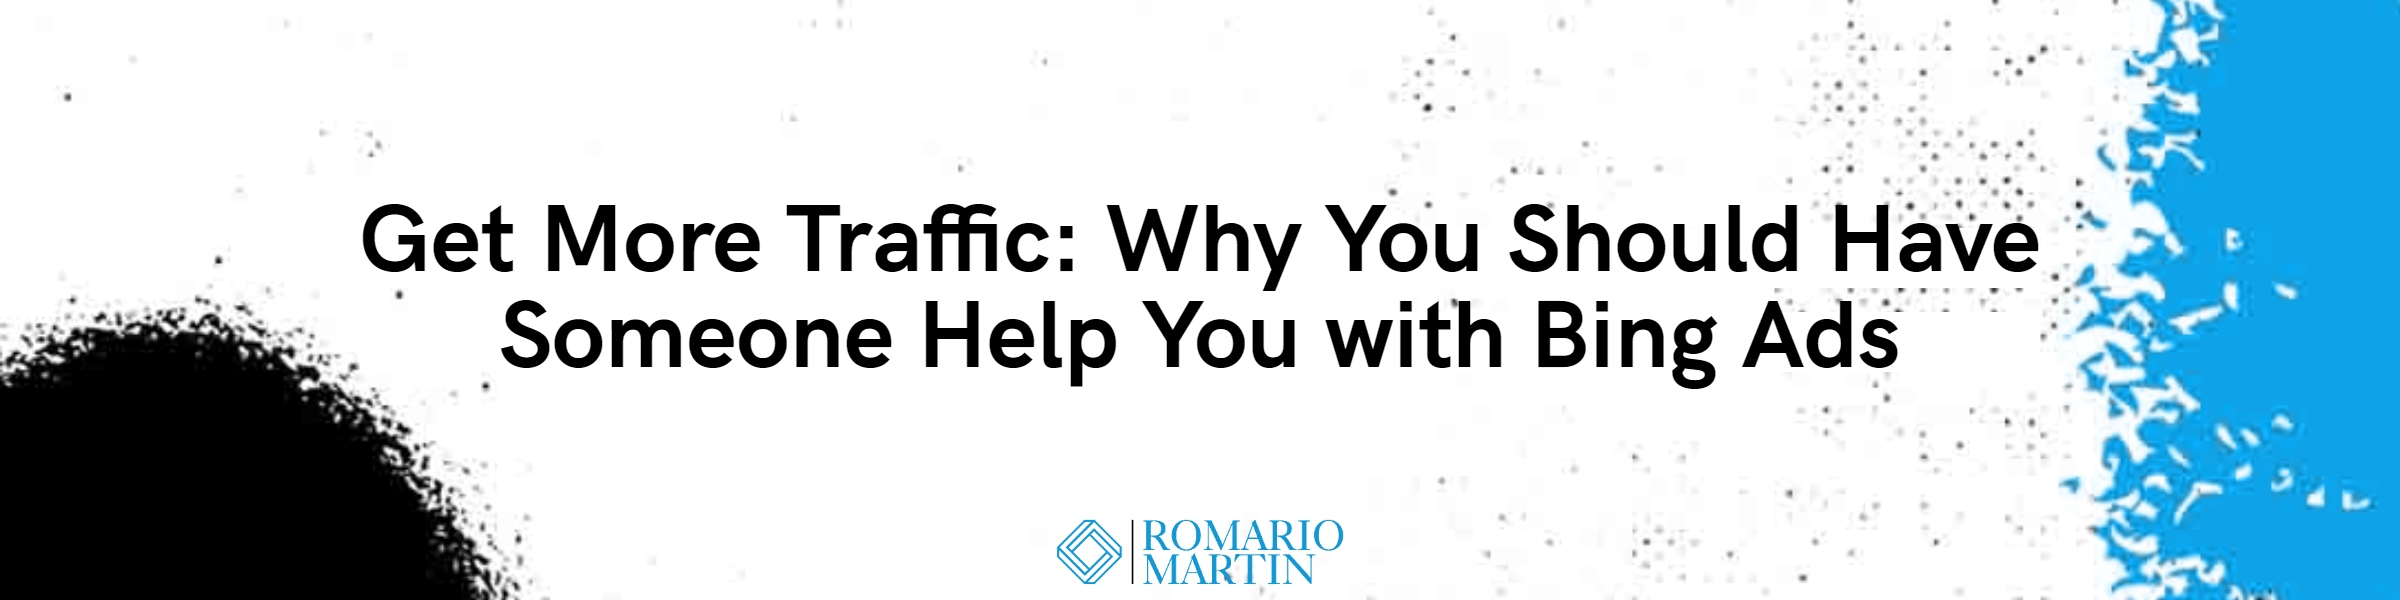 Get More Traffic: Why You Should Have Someone Help You with Bing Ads